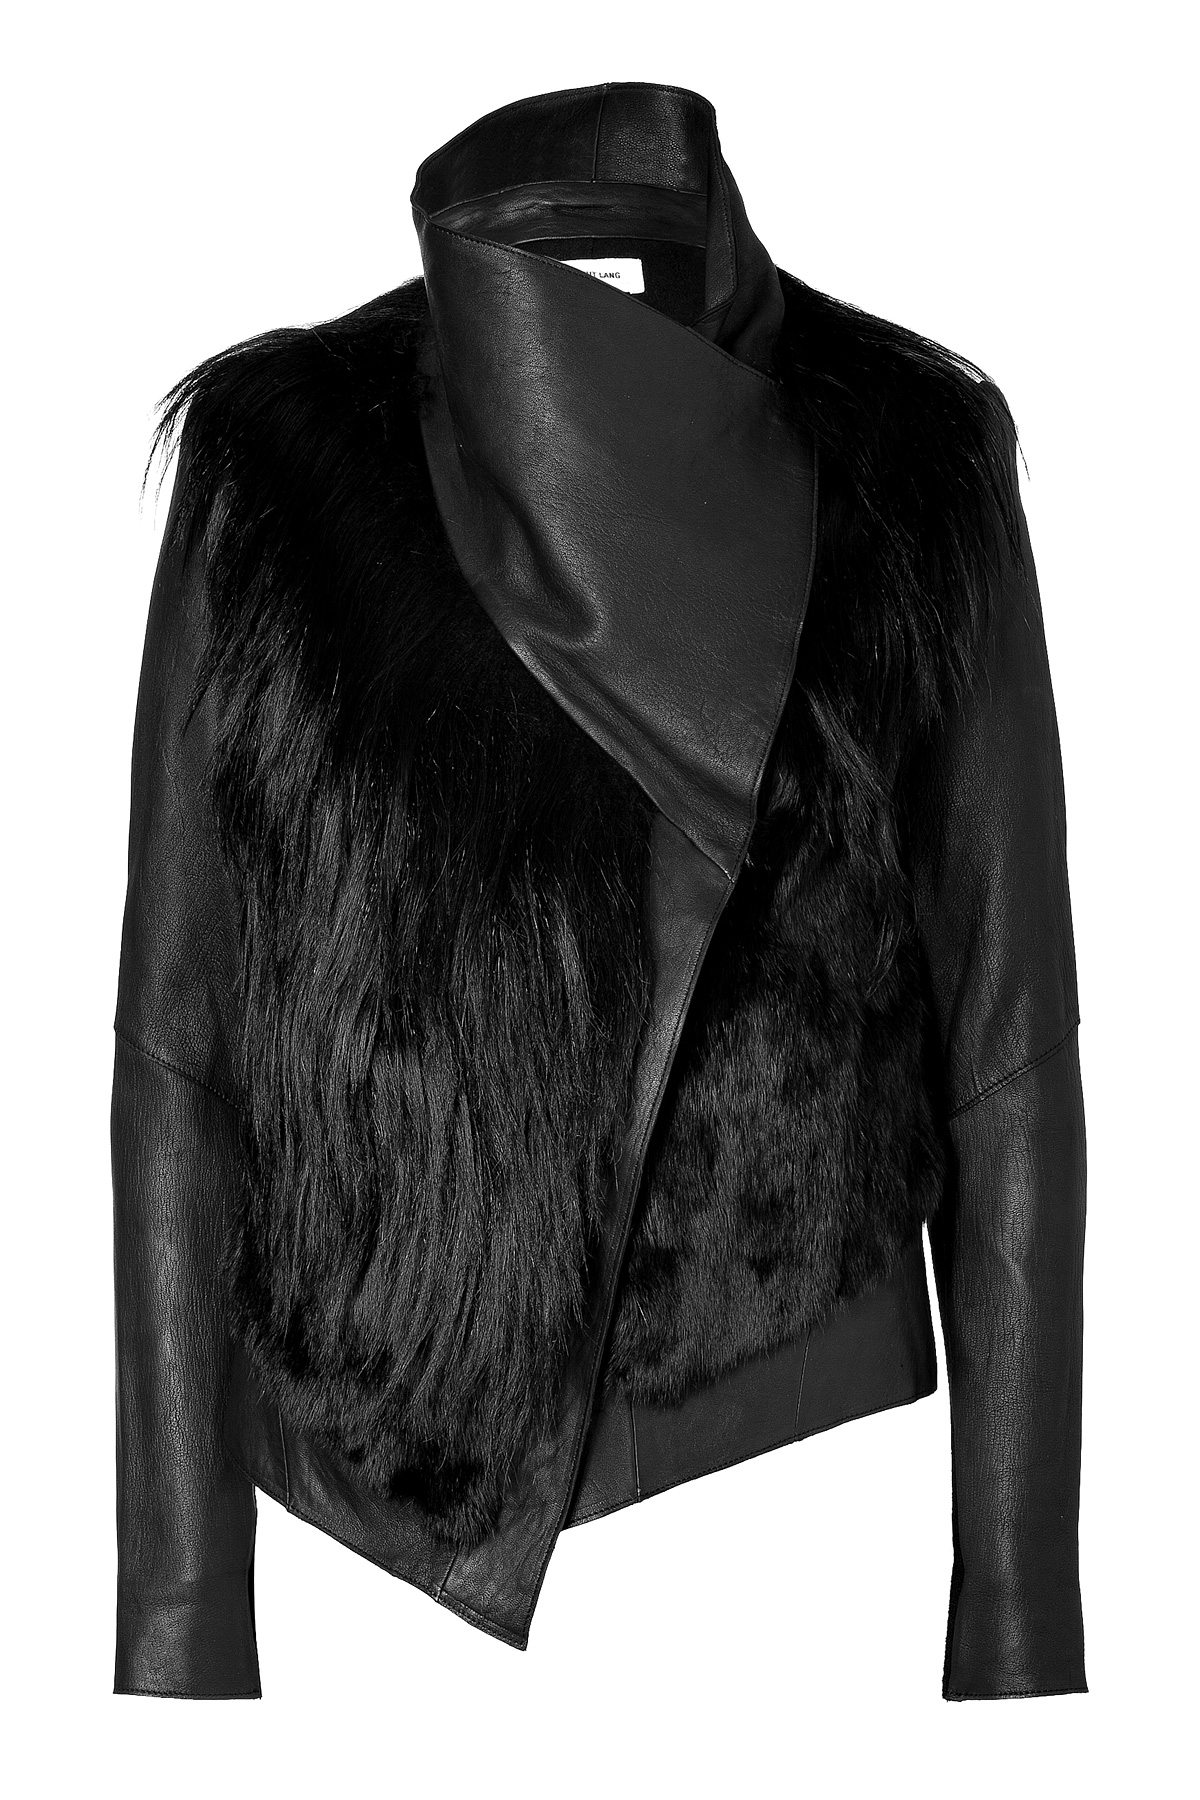 More Details Mackage Ingrid Leather Jacket w/ Fur Collar Details Mackage